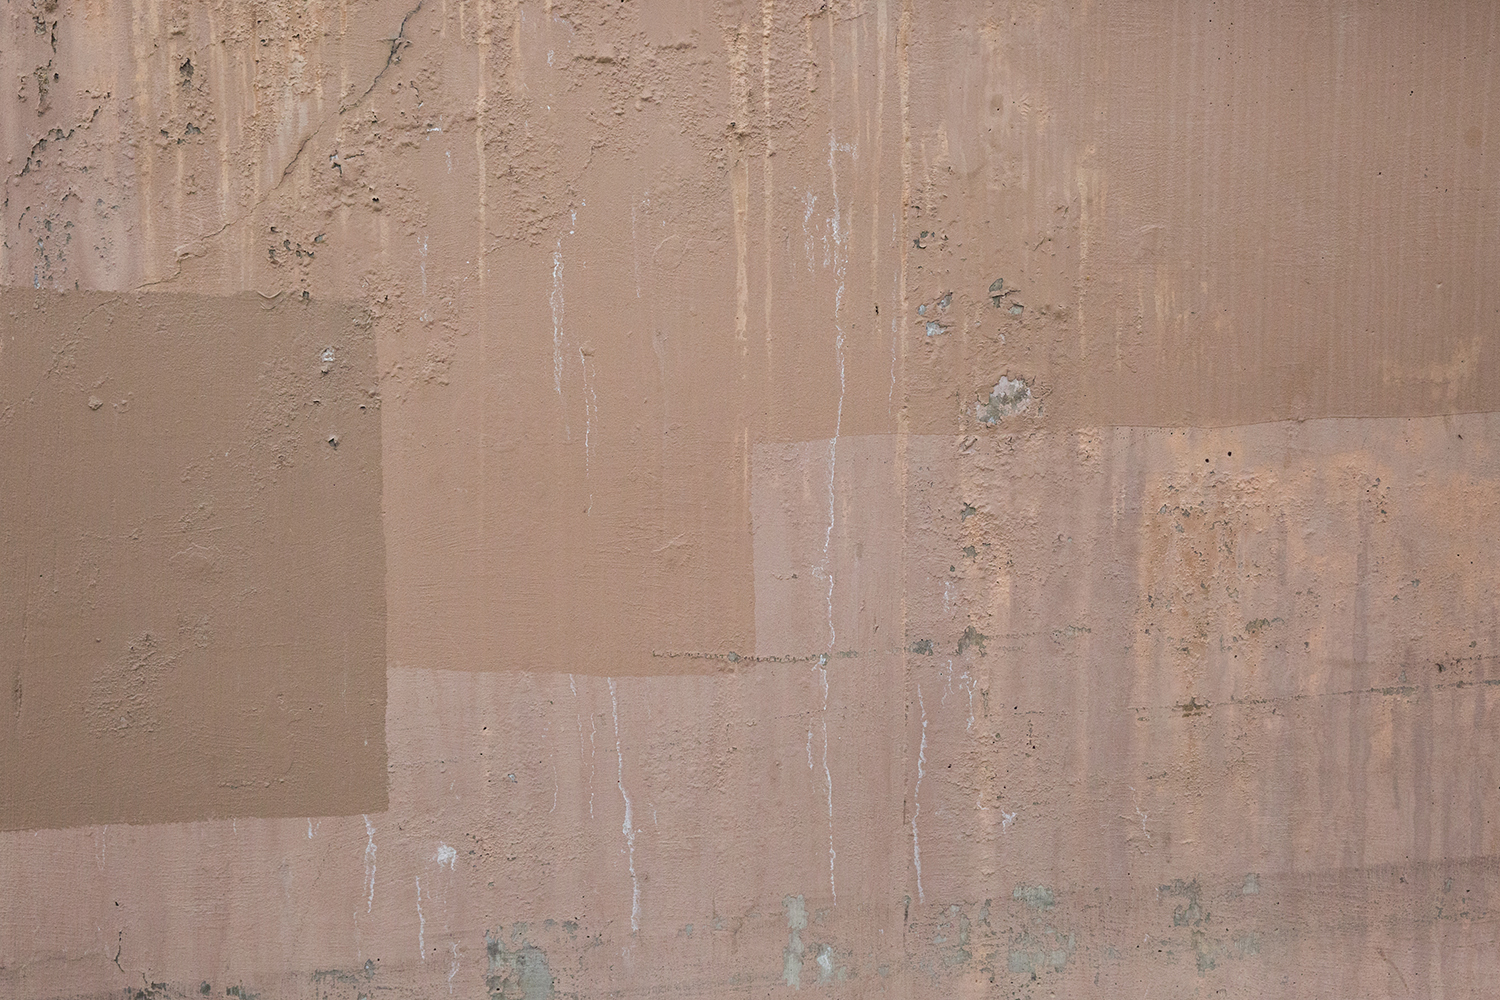 A detailed photograph of a wall with chipped and mismatched paint